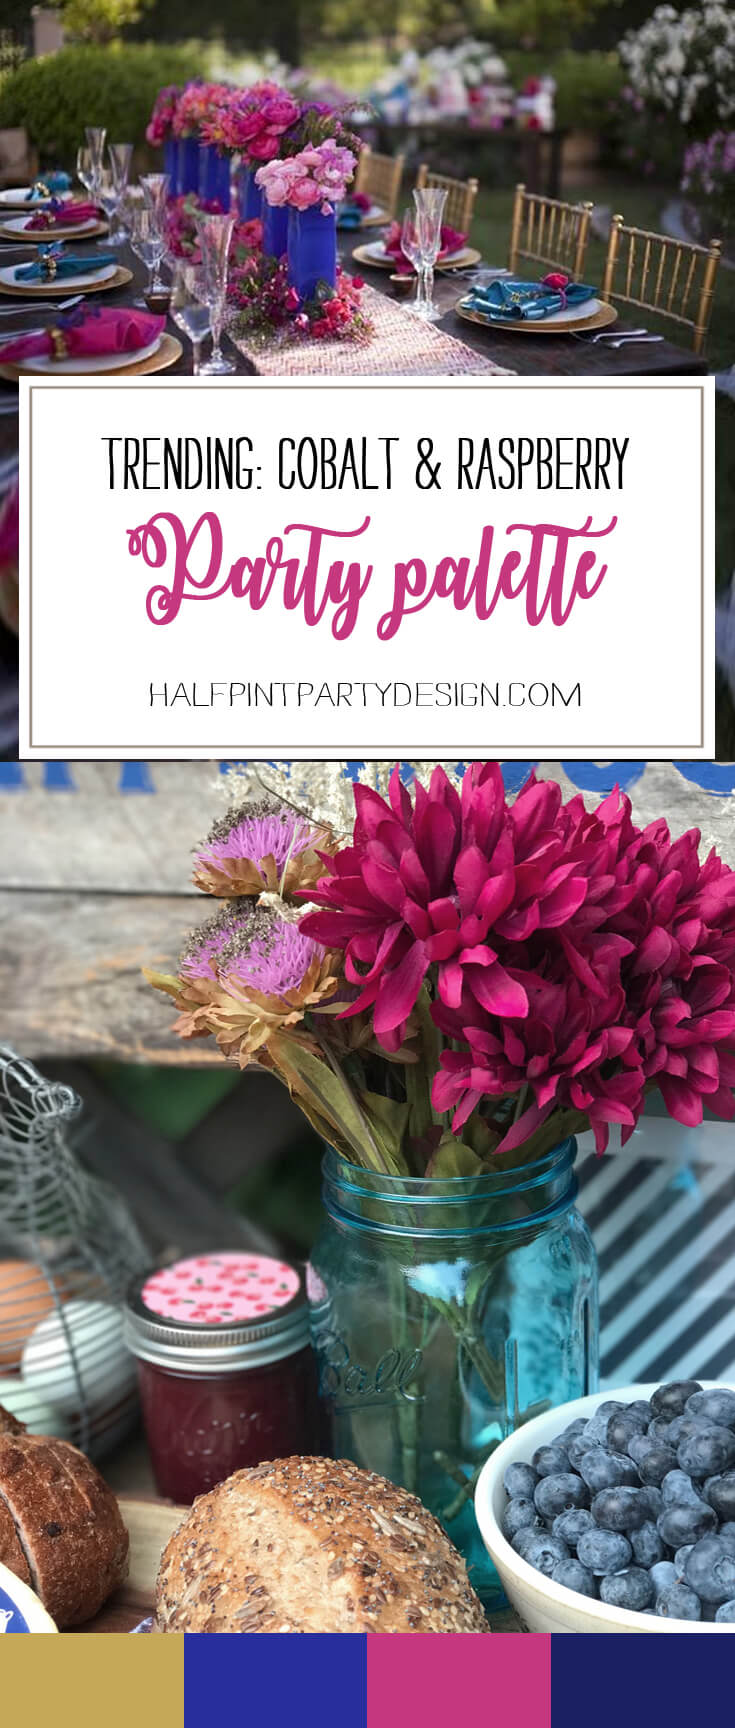 Always on the lookout for great party palettes, this cobalt and raspberry caught our eye! Trend spotting alert! Party Palette: Royal Blue and Raspberry | Halfpint Design - party color, color trends, party palette